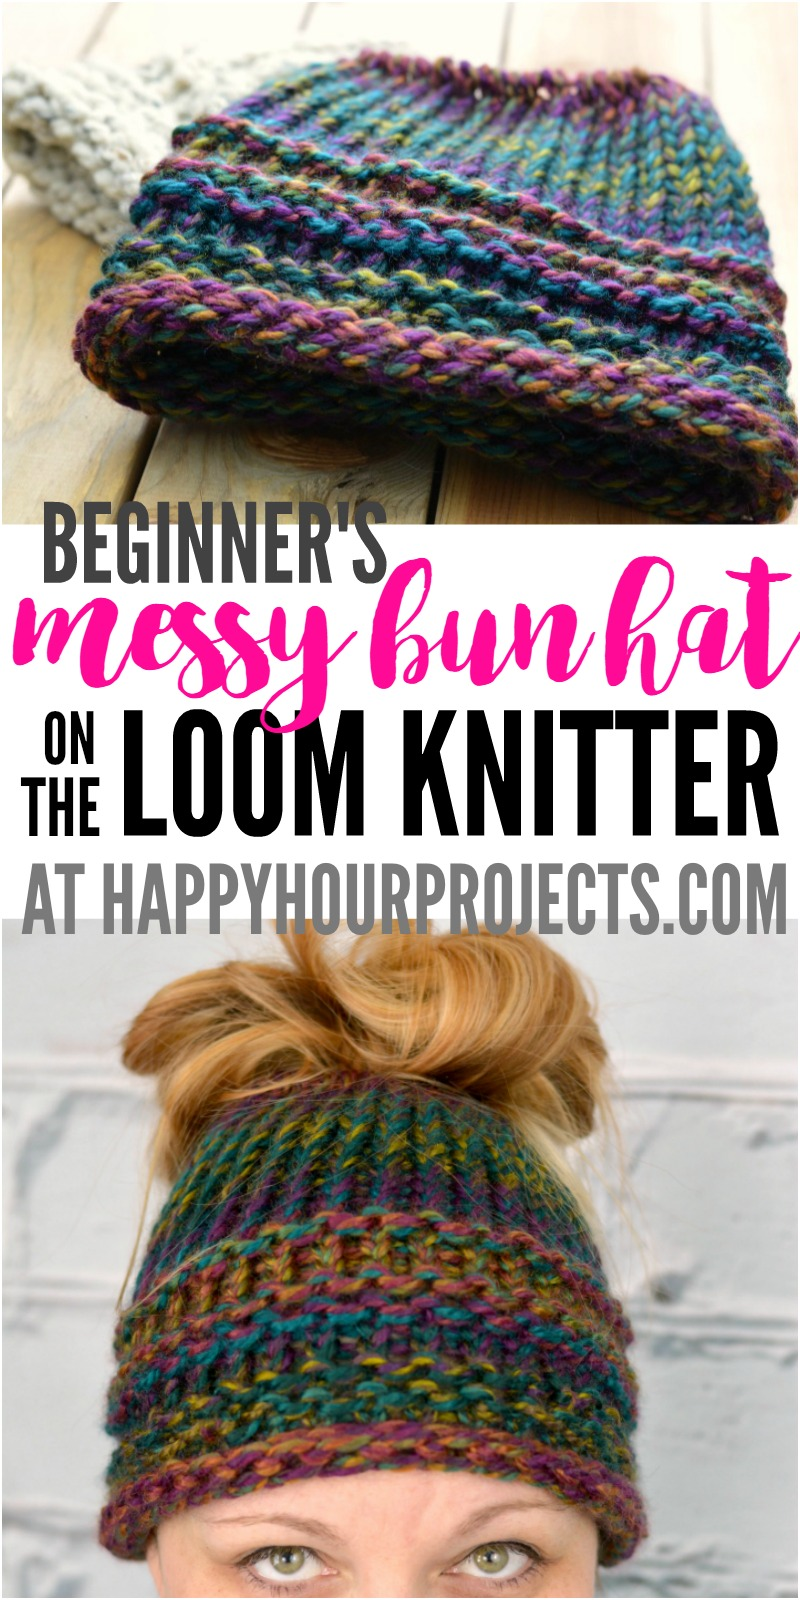 Beginners Messy Bun Hat Using the Loom Knitter at happyhourprojects.com  abd513e1abe